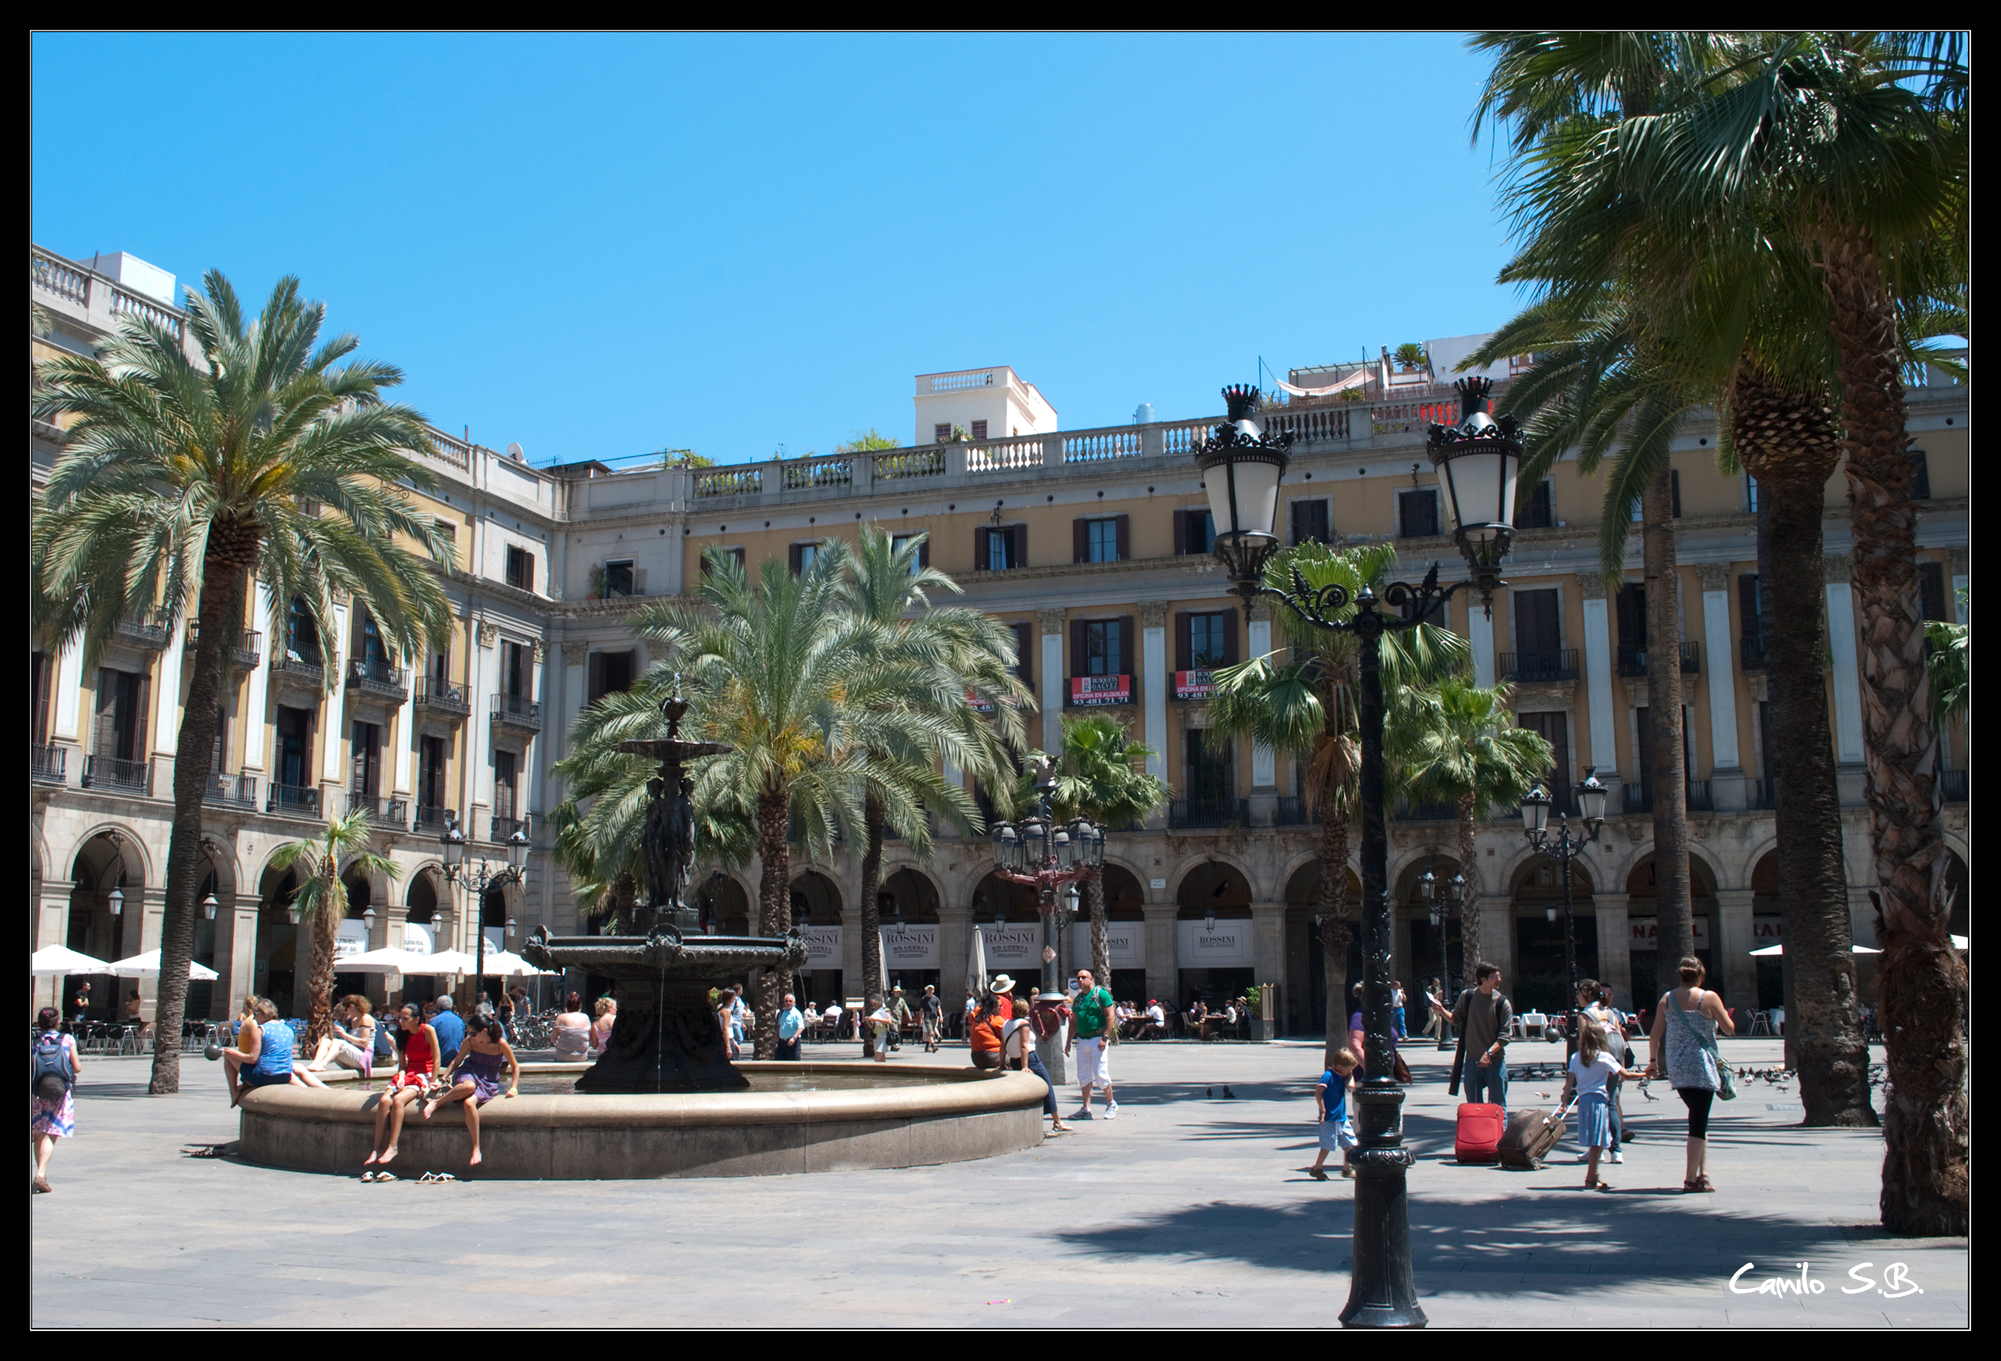 Plaza Real Camilo S.B. flickr Barcelonas districts, this month: Gothic quarter